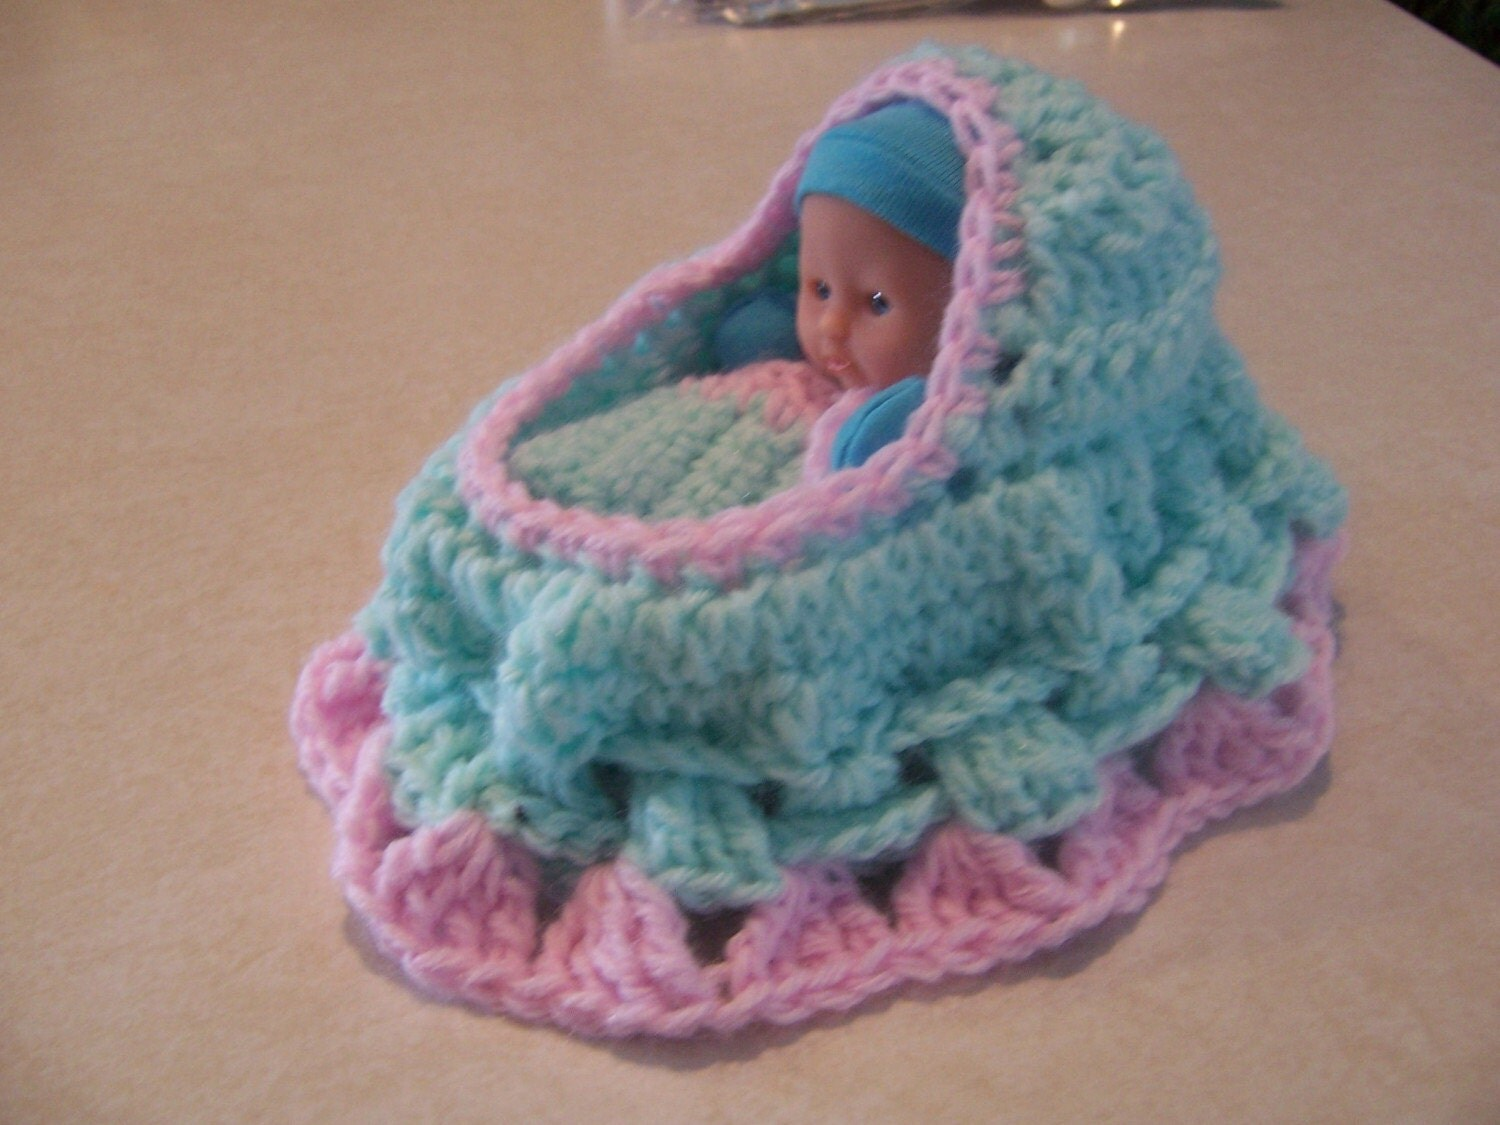 Crochet Bag Pattern Cotton : Crocheted Cradle Purse with Doll and Blanket by ...